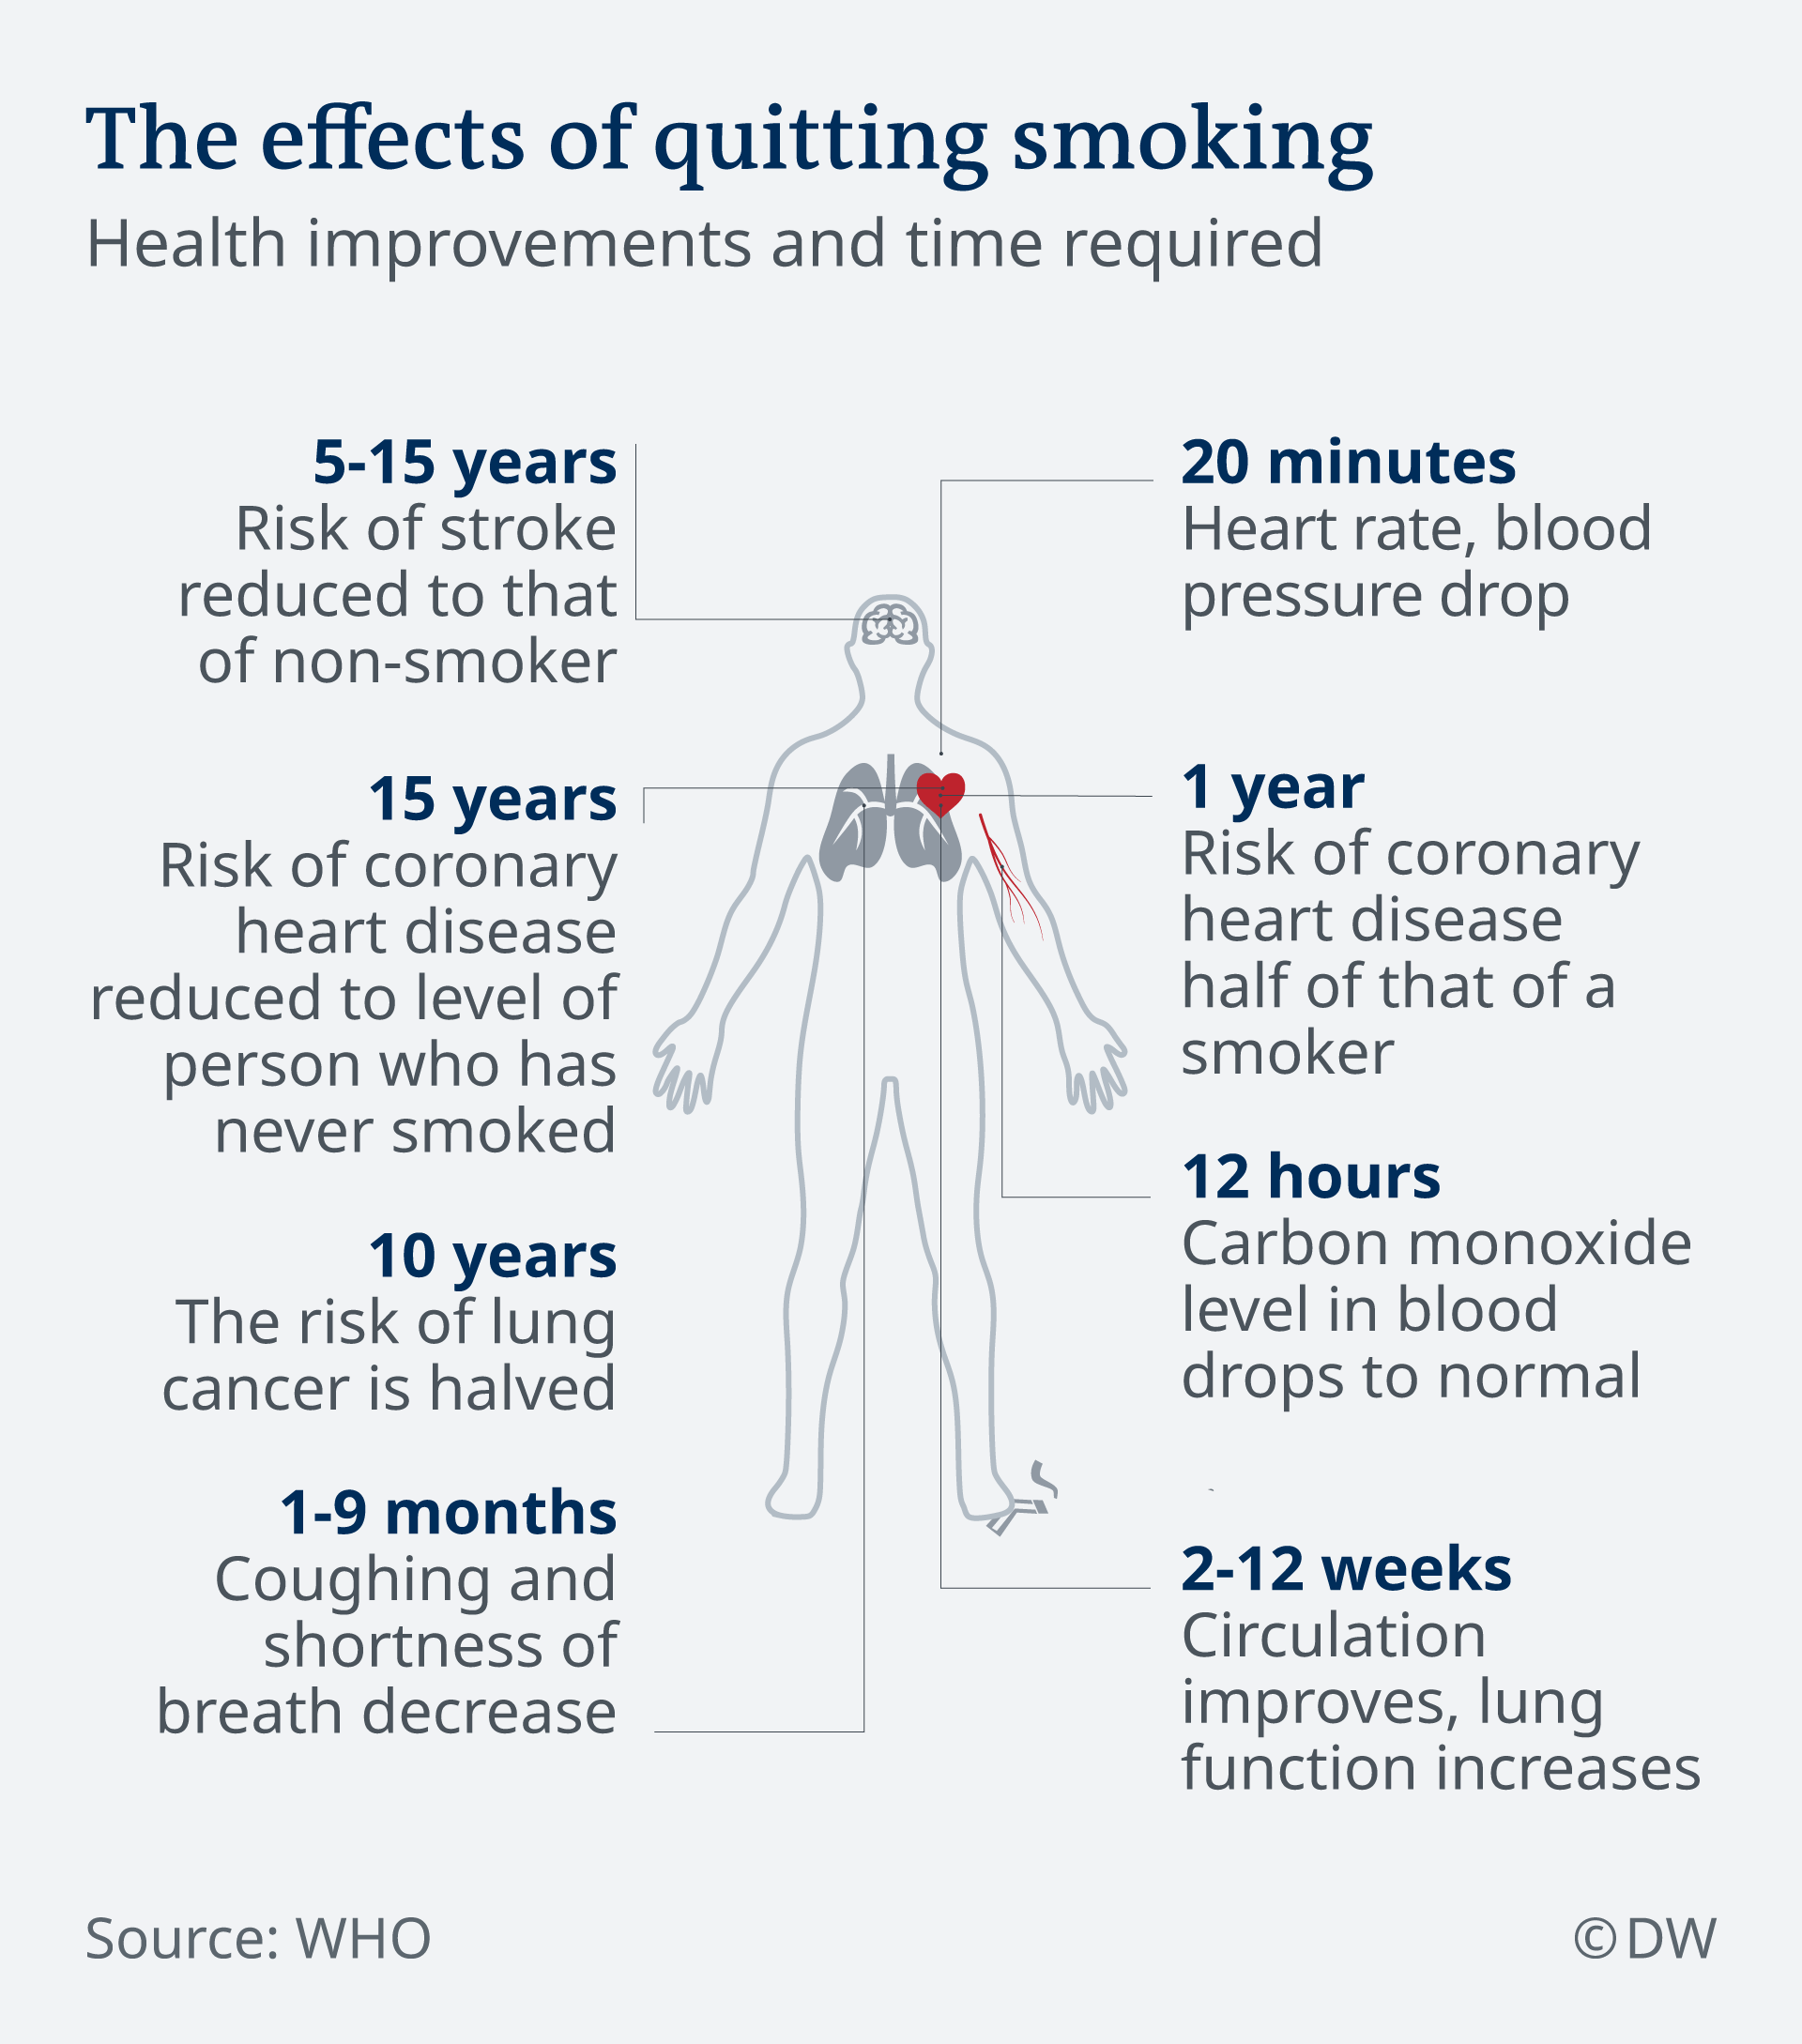 Infographic showing the effects of quitting smoking of the body